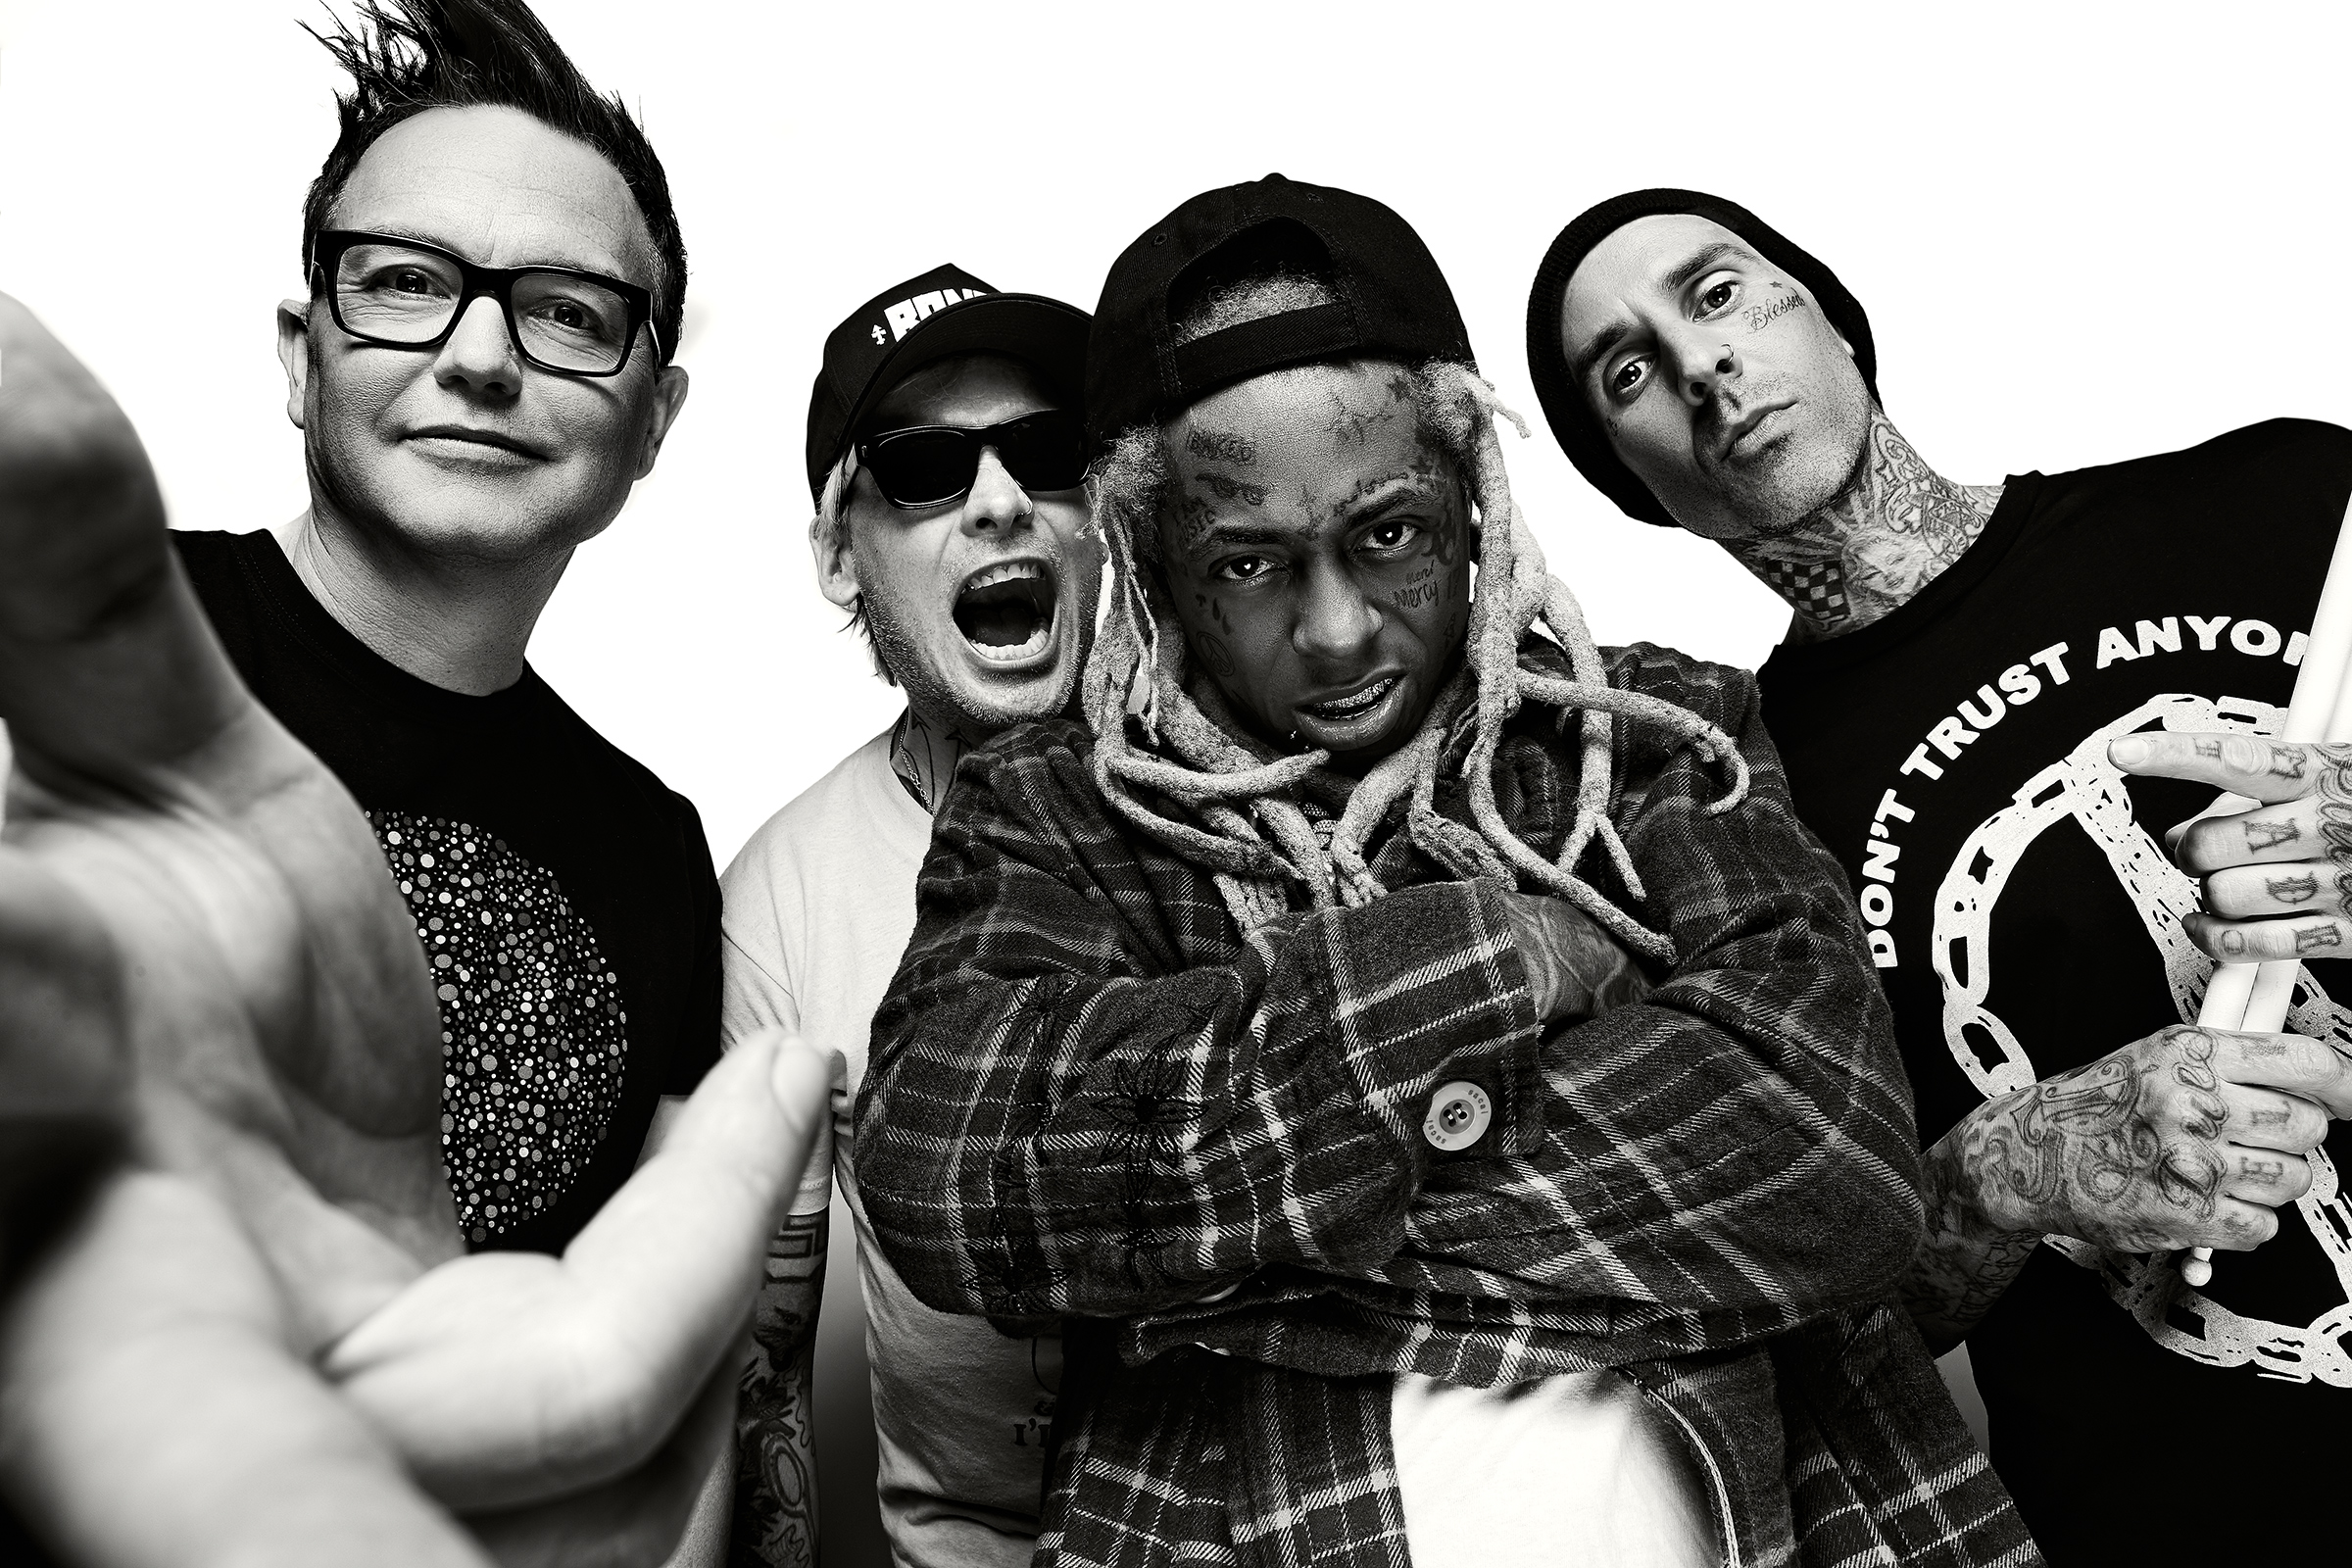 Lil Wayne and Blink-182 Announce Joint Tour